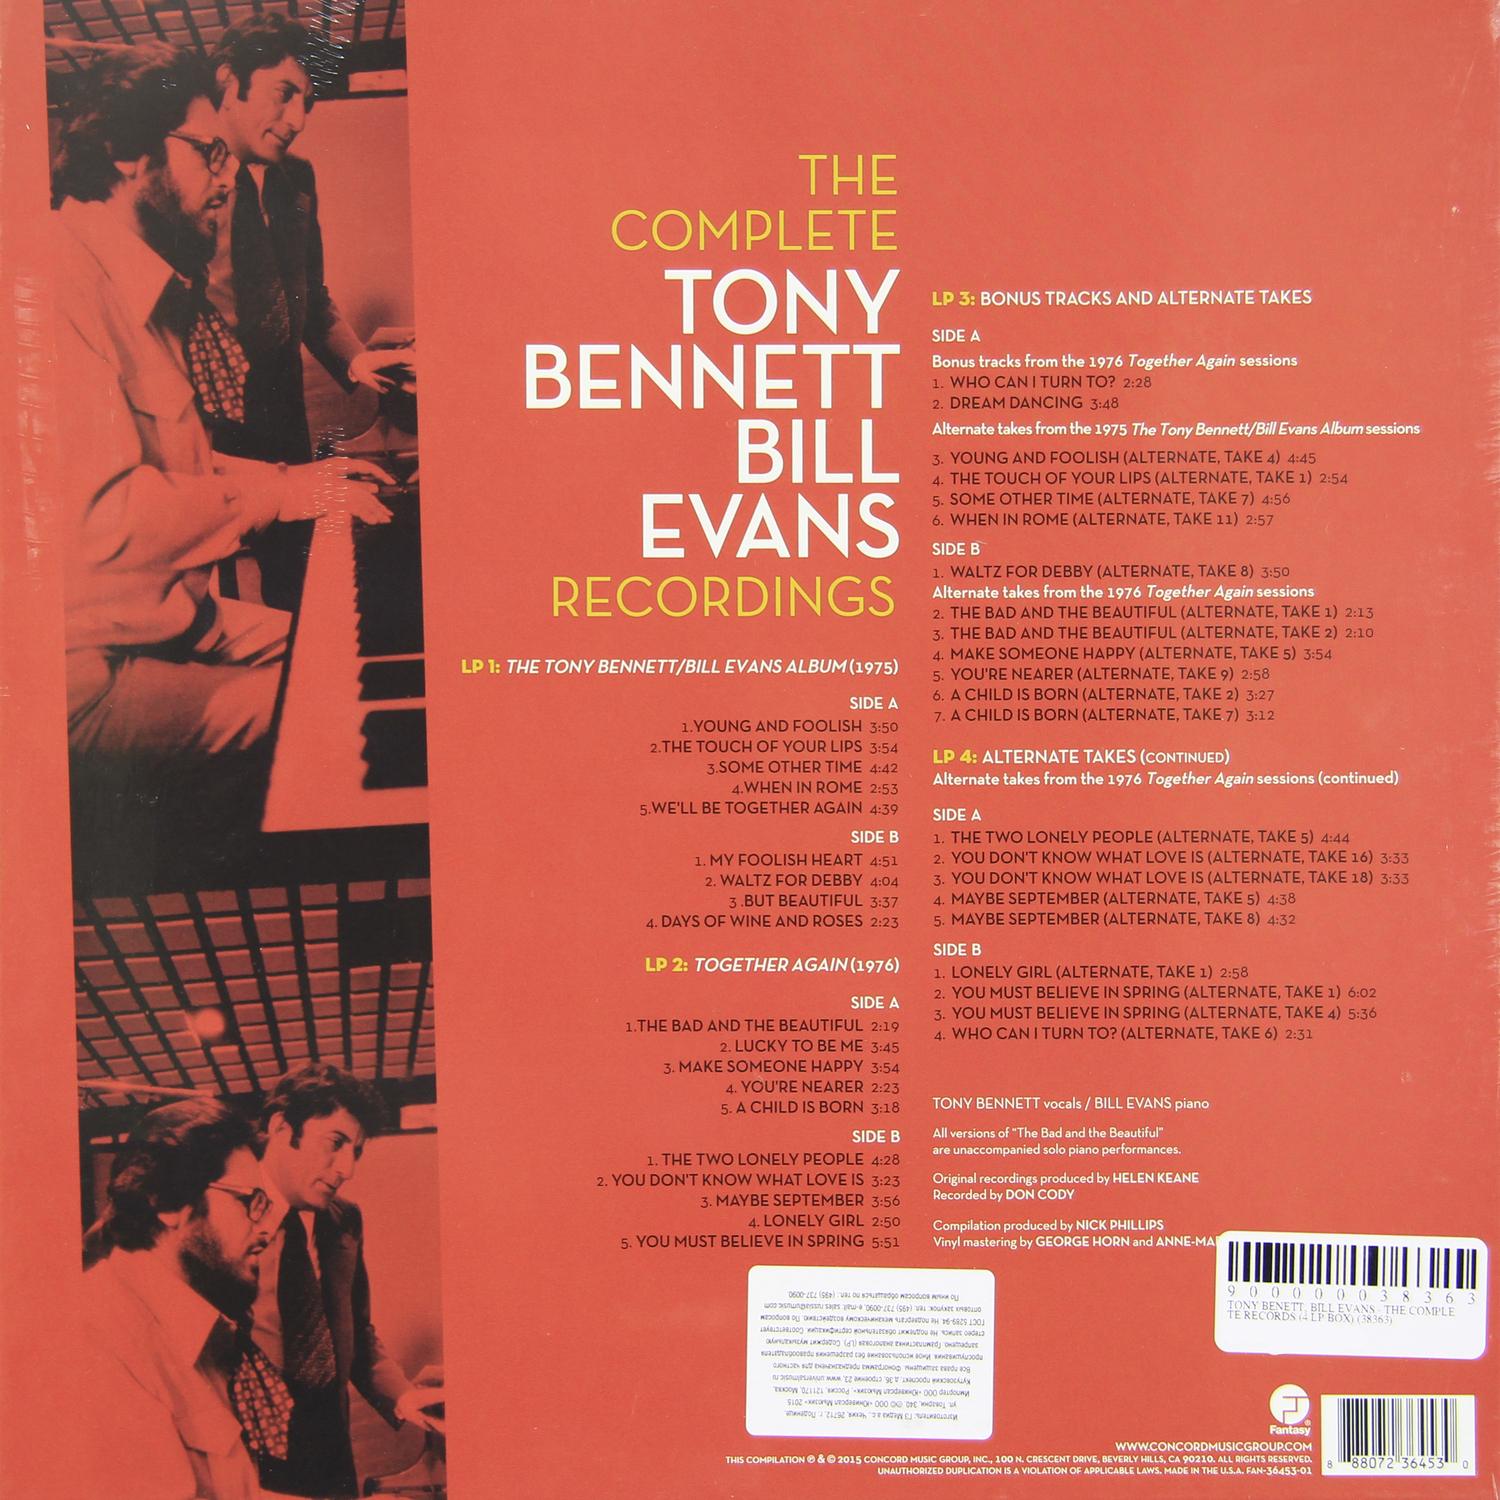 Tony Bennett Bill Evans The Complete Records 4 Lp Box